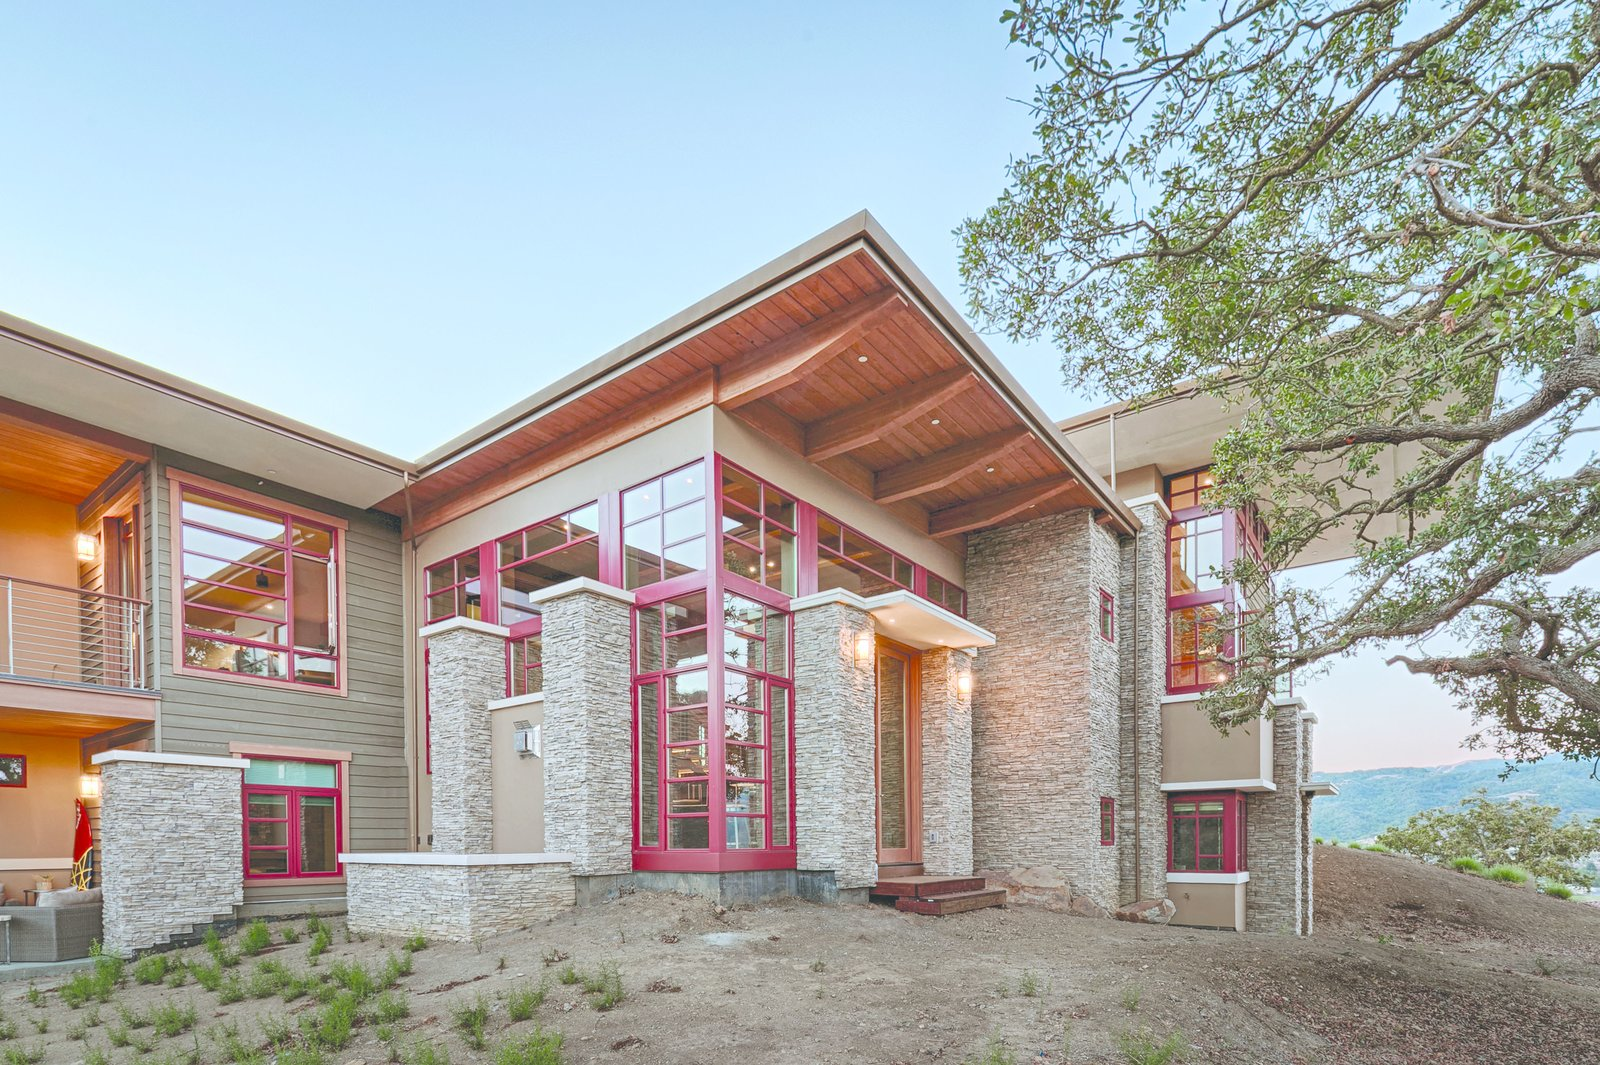 The home rises and falls across 7 levels to accommodate the contours of the site. While the exterior dry stacked stone, cedar siding, and wood trim echo the natural landscape, the red windows lend contrast and definition.  Photo 9 of 9 in An Architectural Feat in Silicon Valley Tames a Rocky Landscape